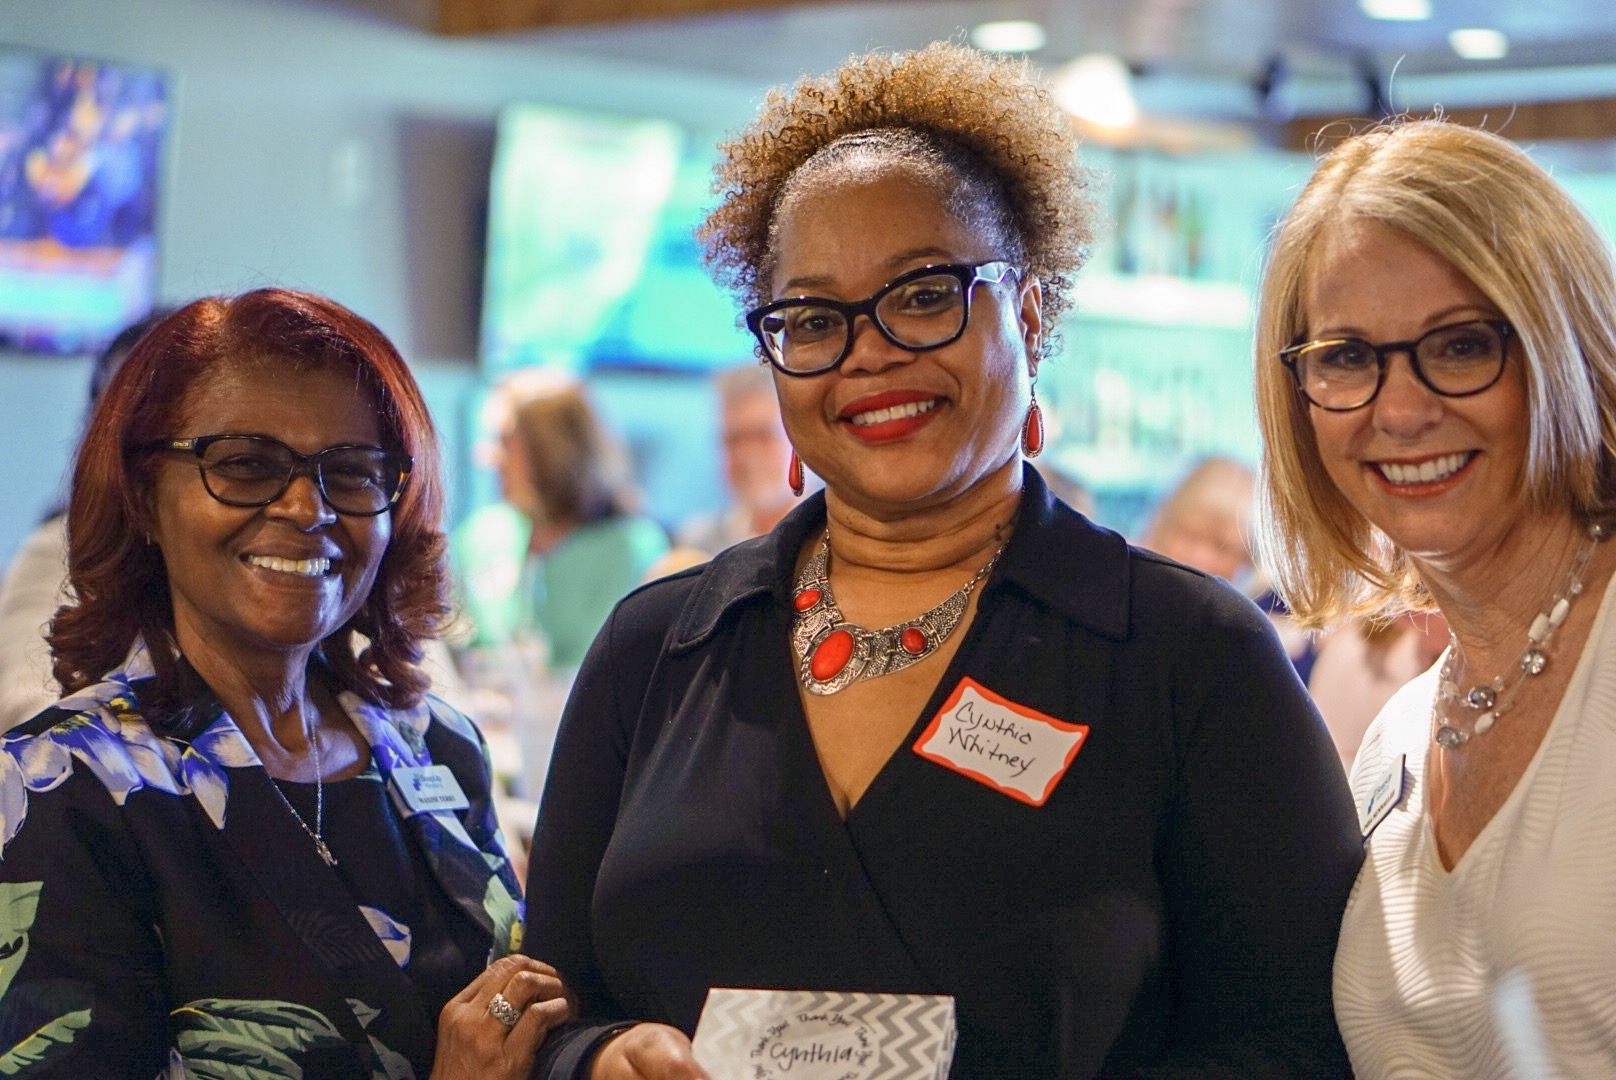 Cynthia Whitney-Hopkins receives her award from Maxine Terry and Linda Nunnallee at the Volunteer Appreciation Party at Cantina 18 on April 29, 2019.